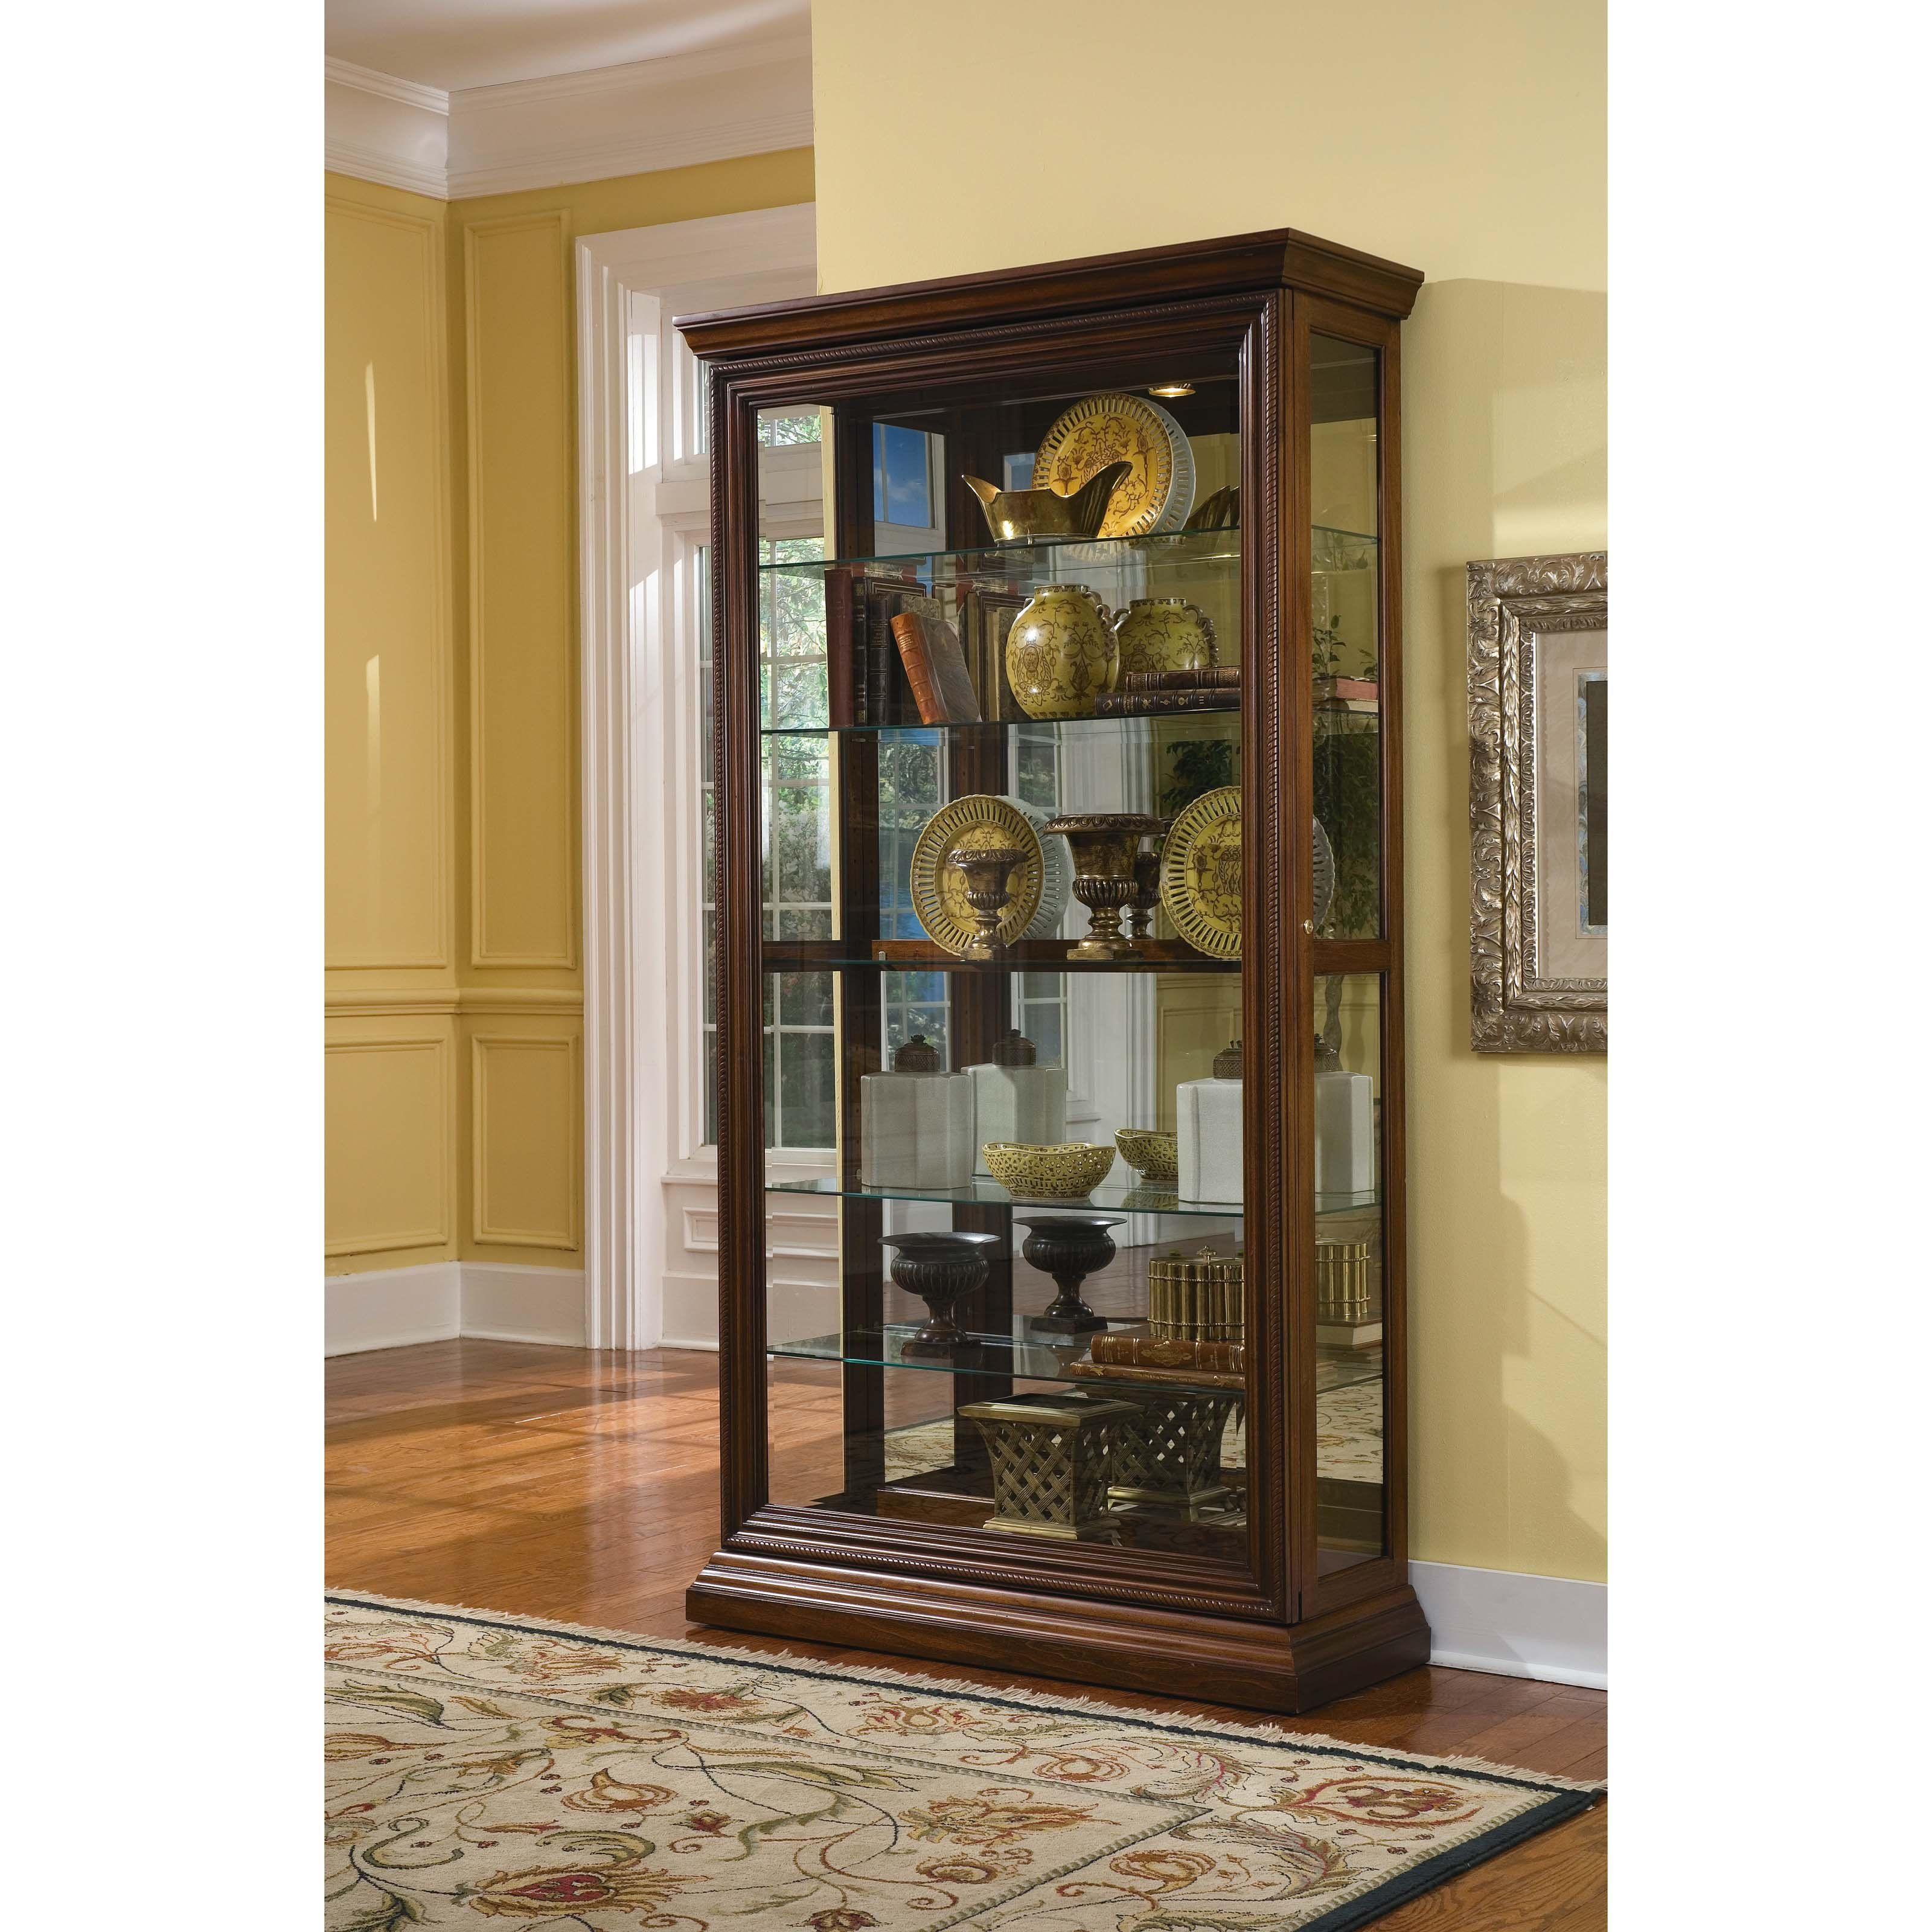 Beau Pulaski Tristan Curio Cabinet   The Pulaski Tristan Curio Cabinet Lets You  Display Your Finest Collectibles. Featuring An Embossed Decorative Door  Frame ...